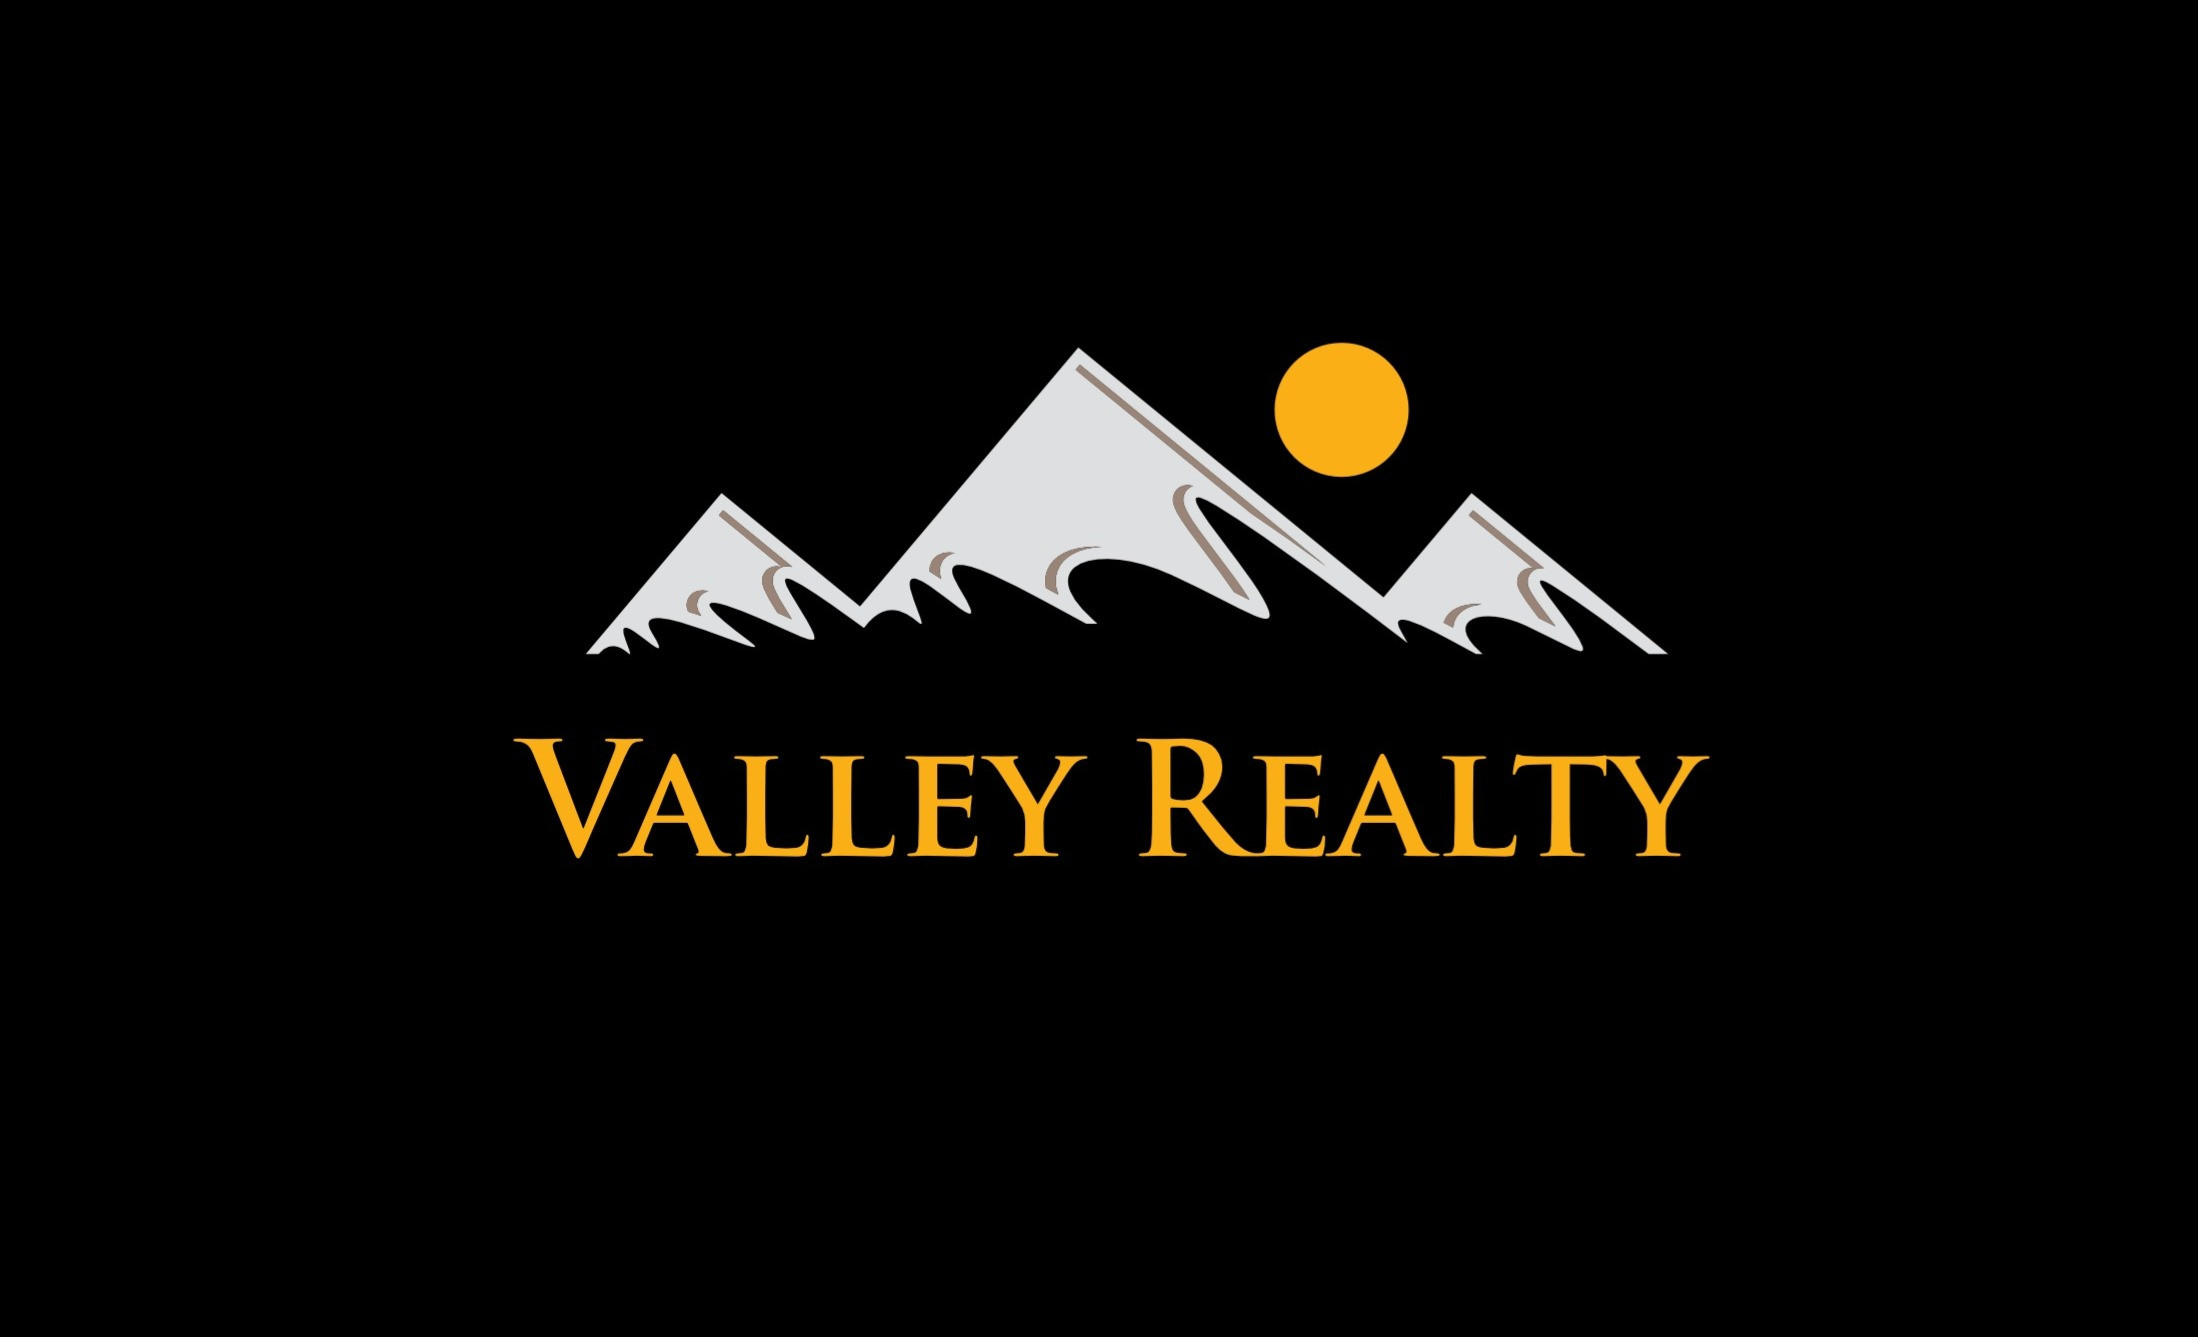 Looking to Buy or Sell Property